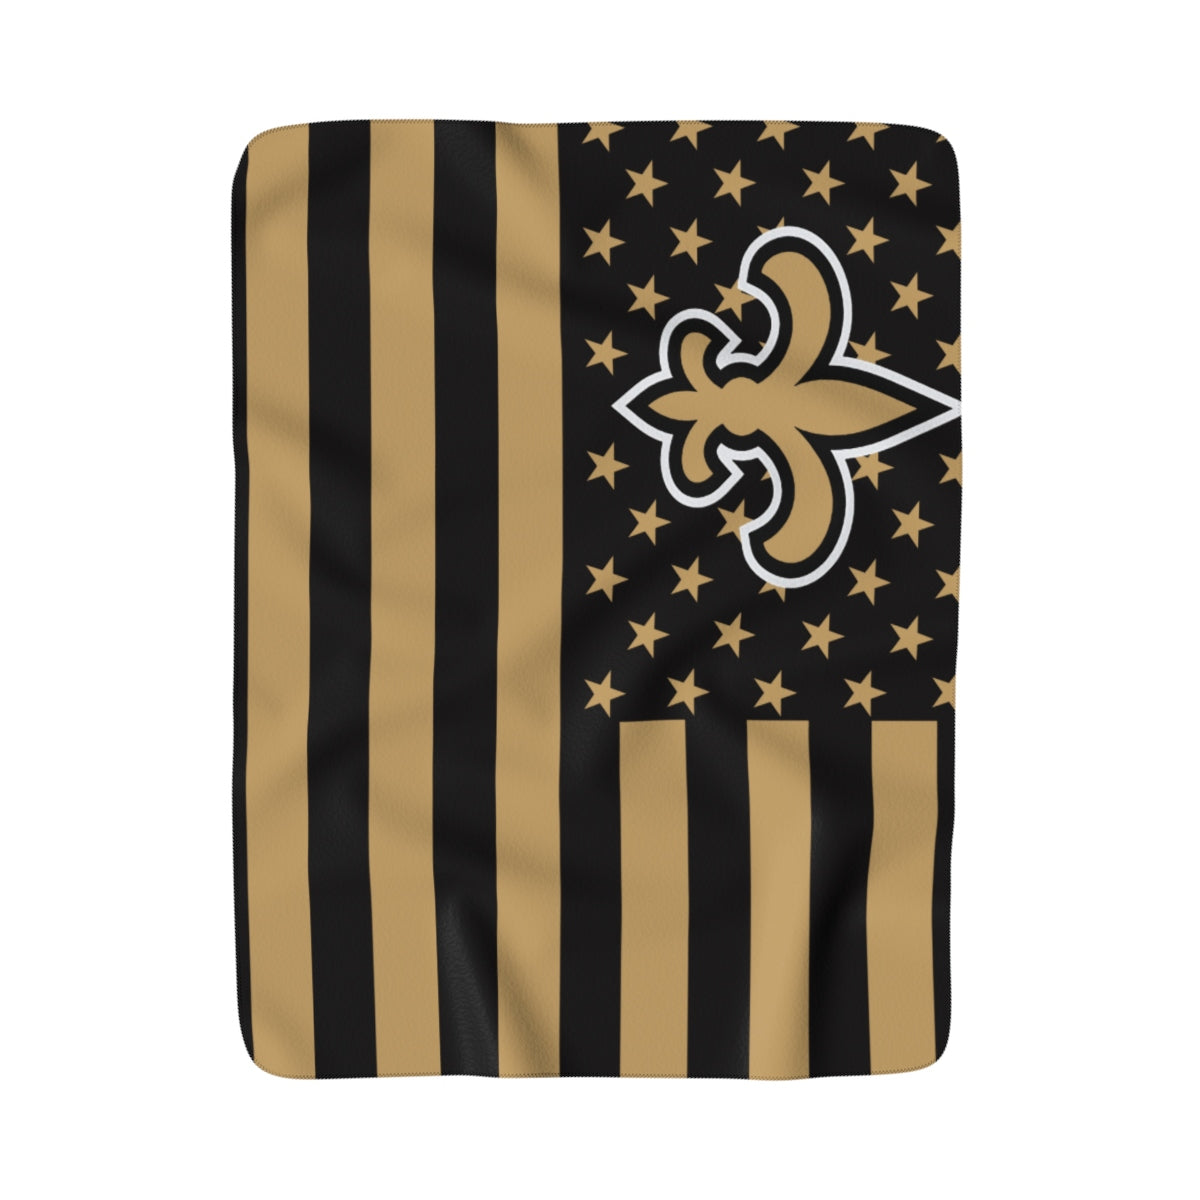 New Orleans Saints Louisiana American flag Sherpa Fleece Throw Blanket 50x60